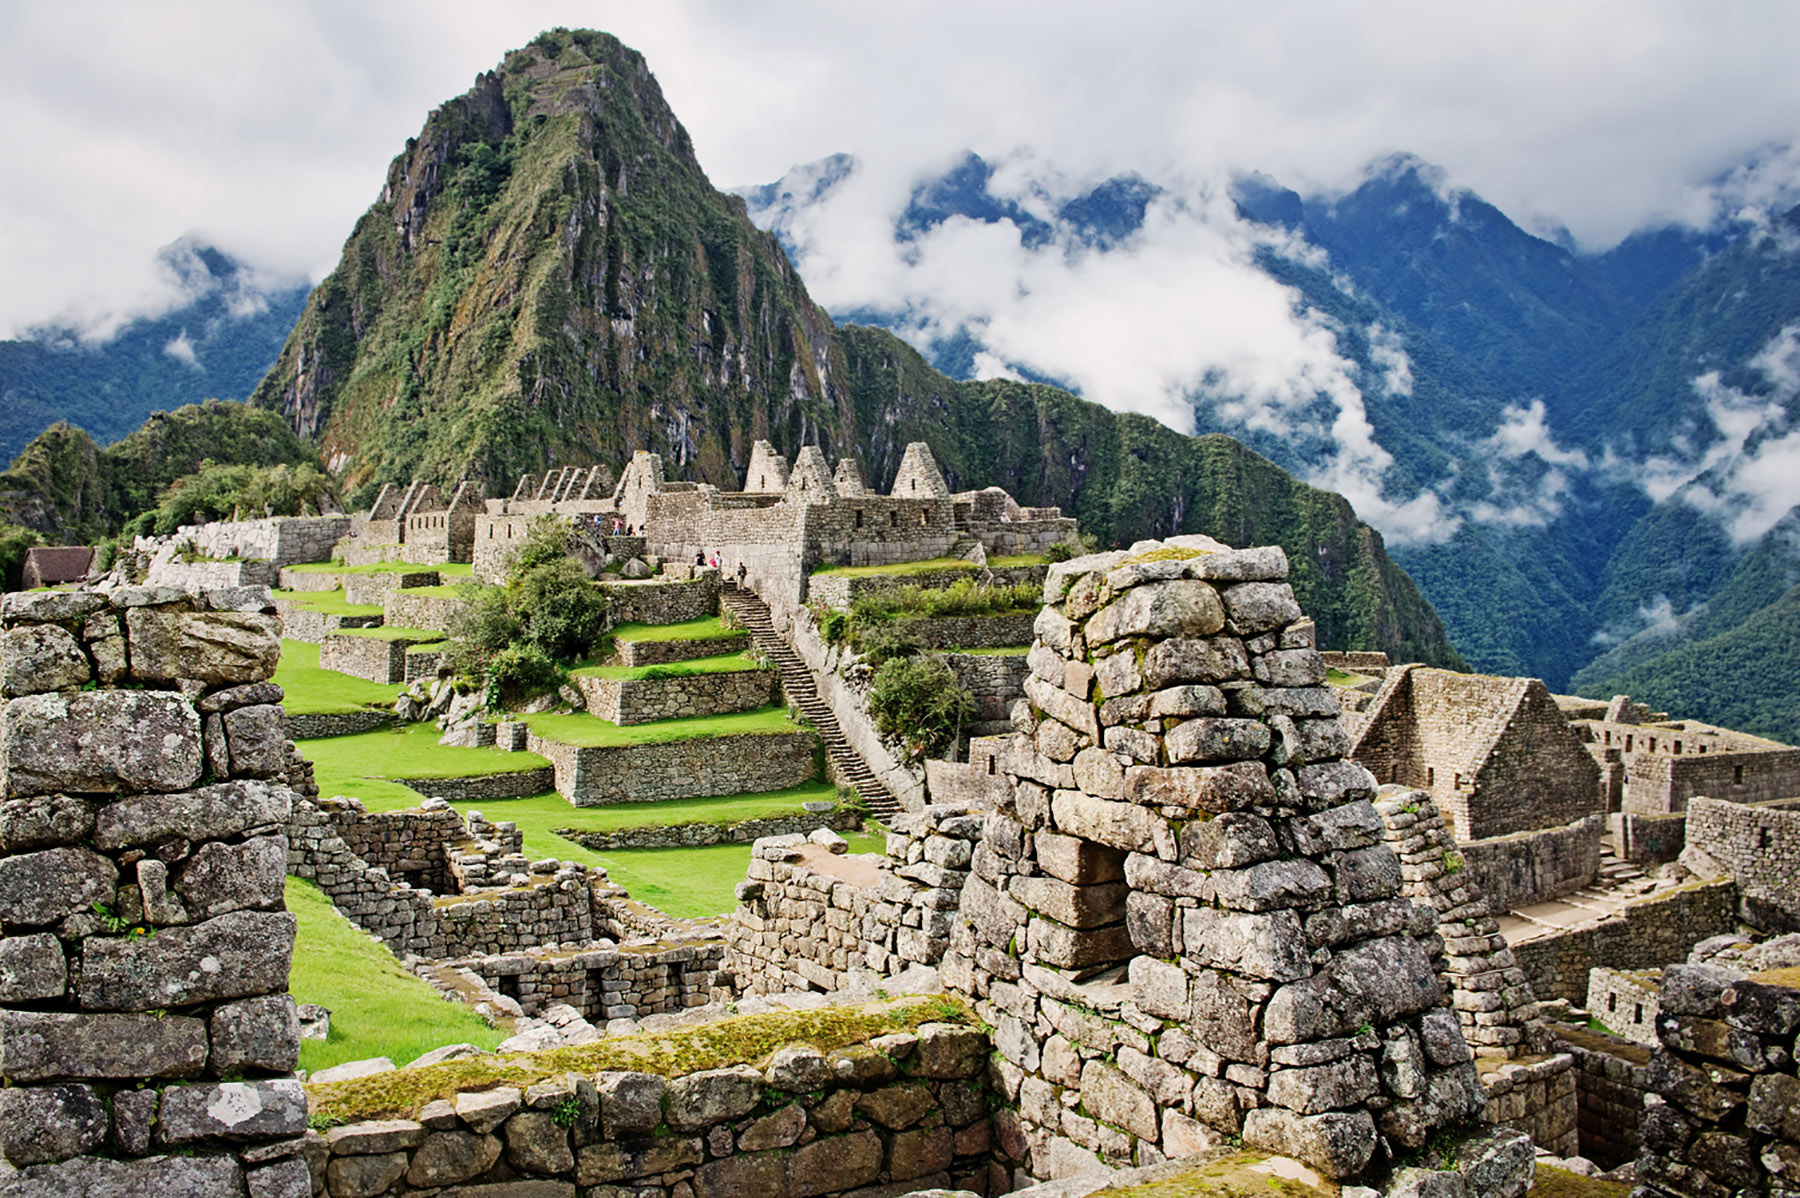 You can visit Macchu Picchu when you travel to South America with Azamara Club Cruises.